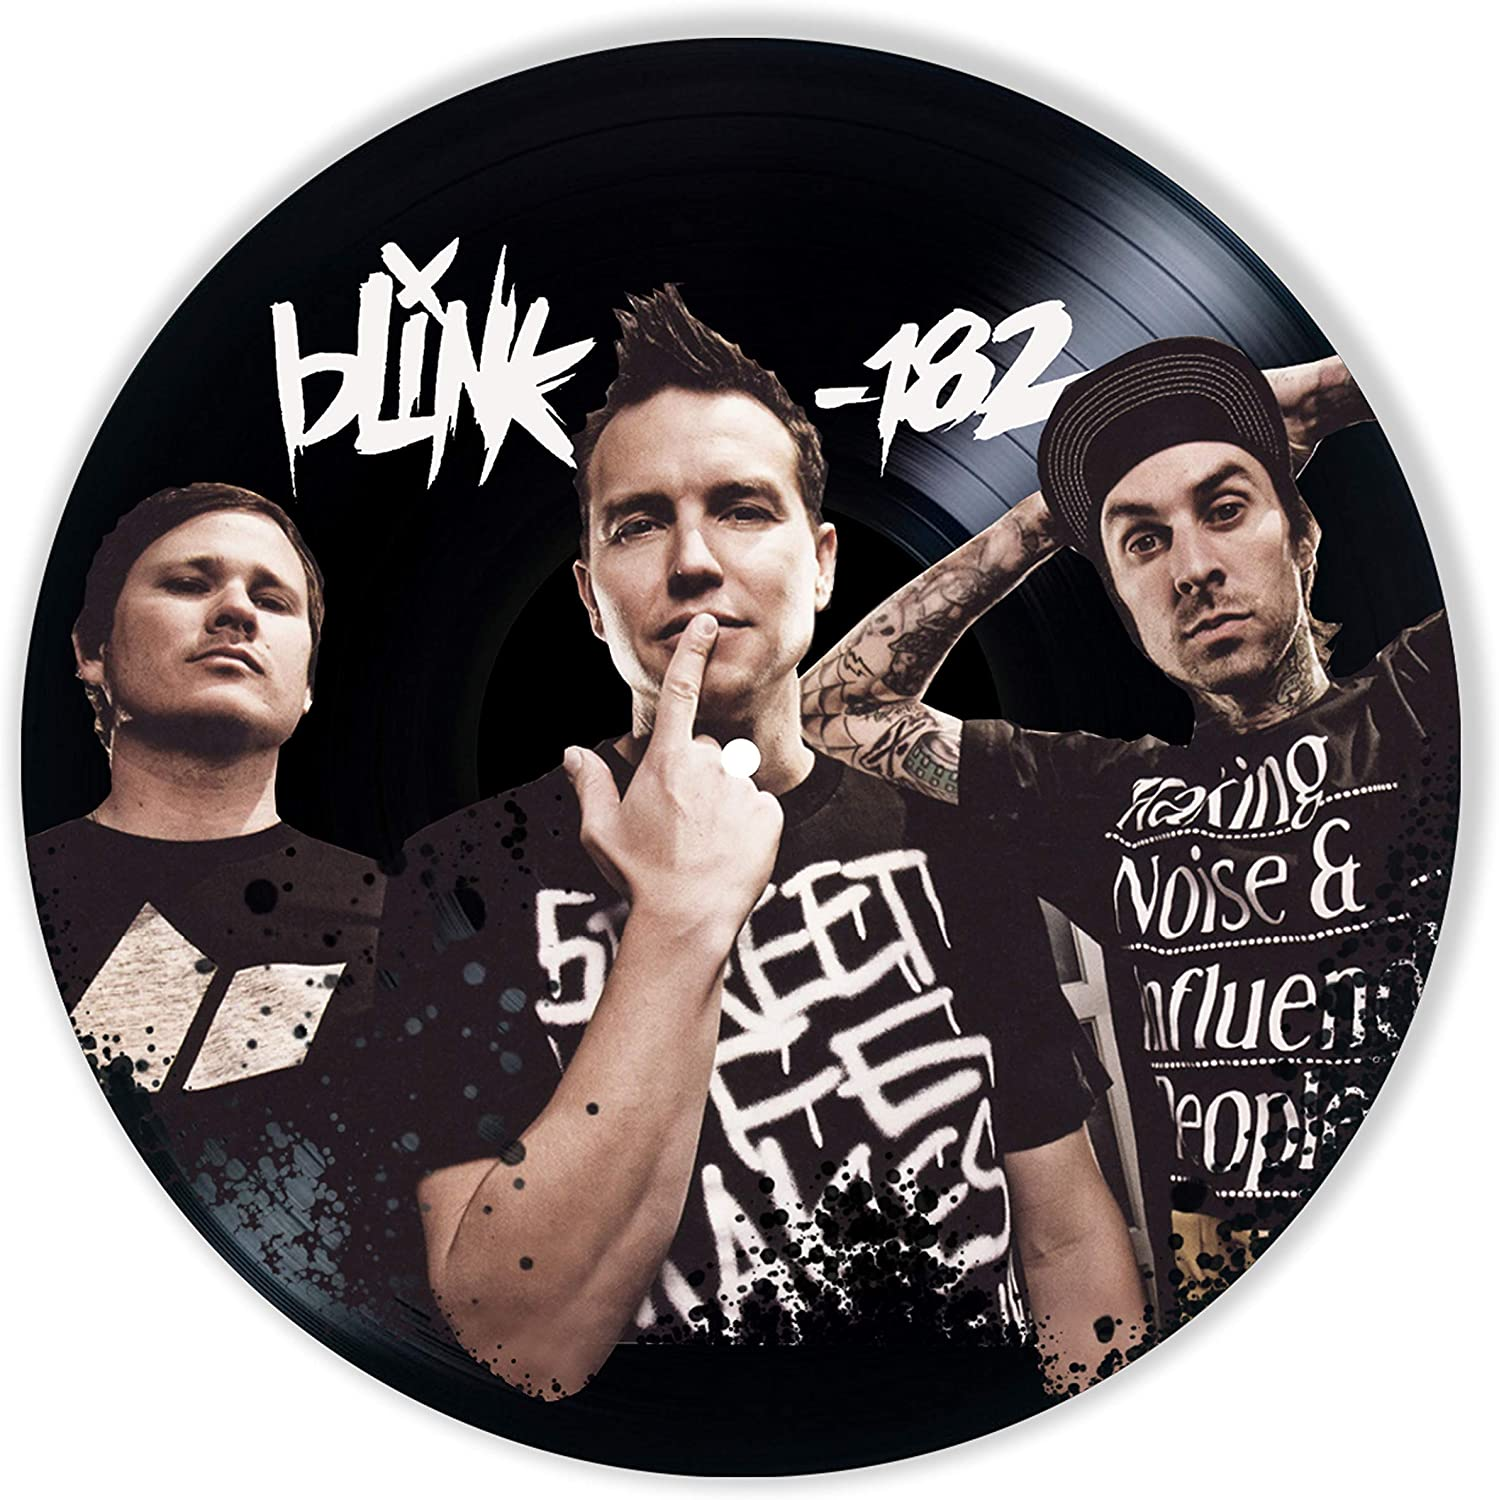 Blink-182 Vinyl Decor, Wall Decor Painted Blink-182, Original Gifts for Music Lovers,The Best Gift for Souvenir, Unique Wall Art Home Decor